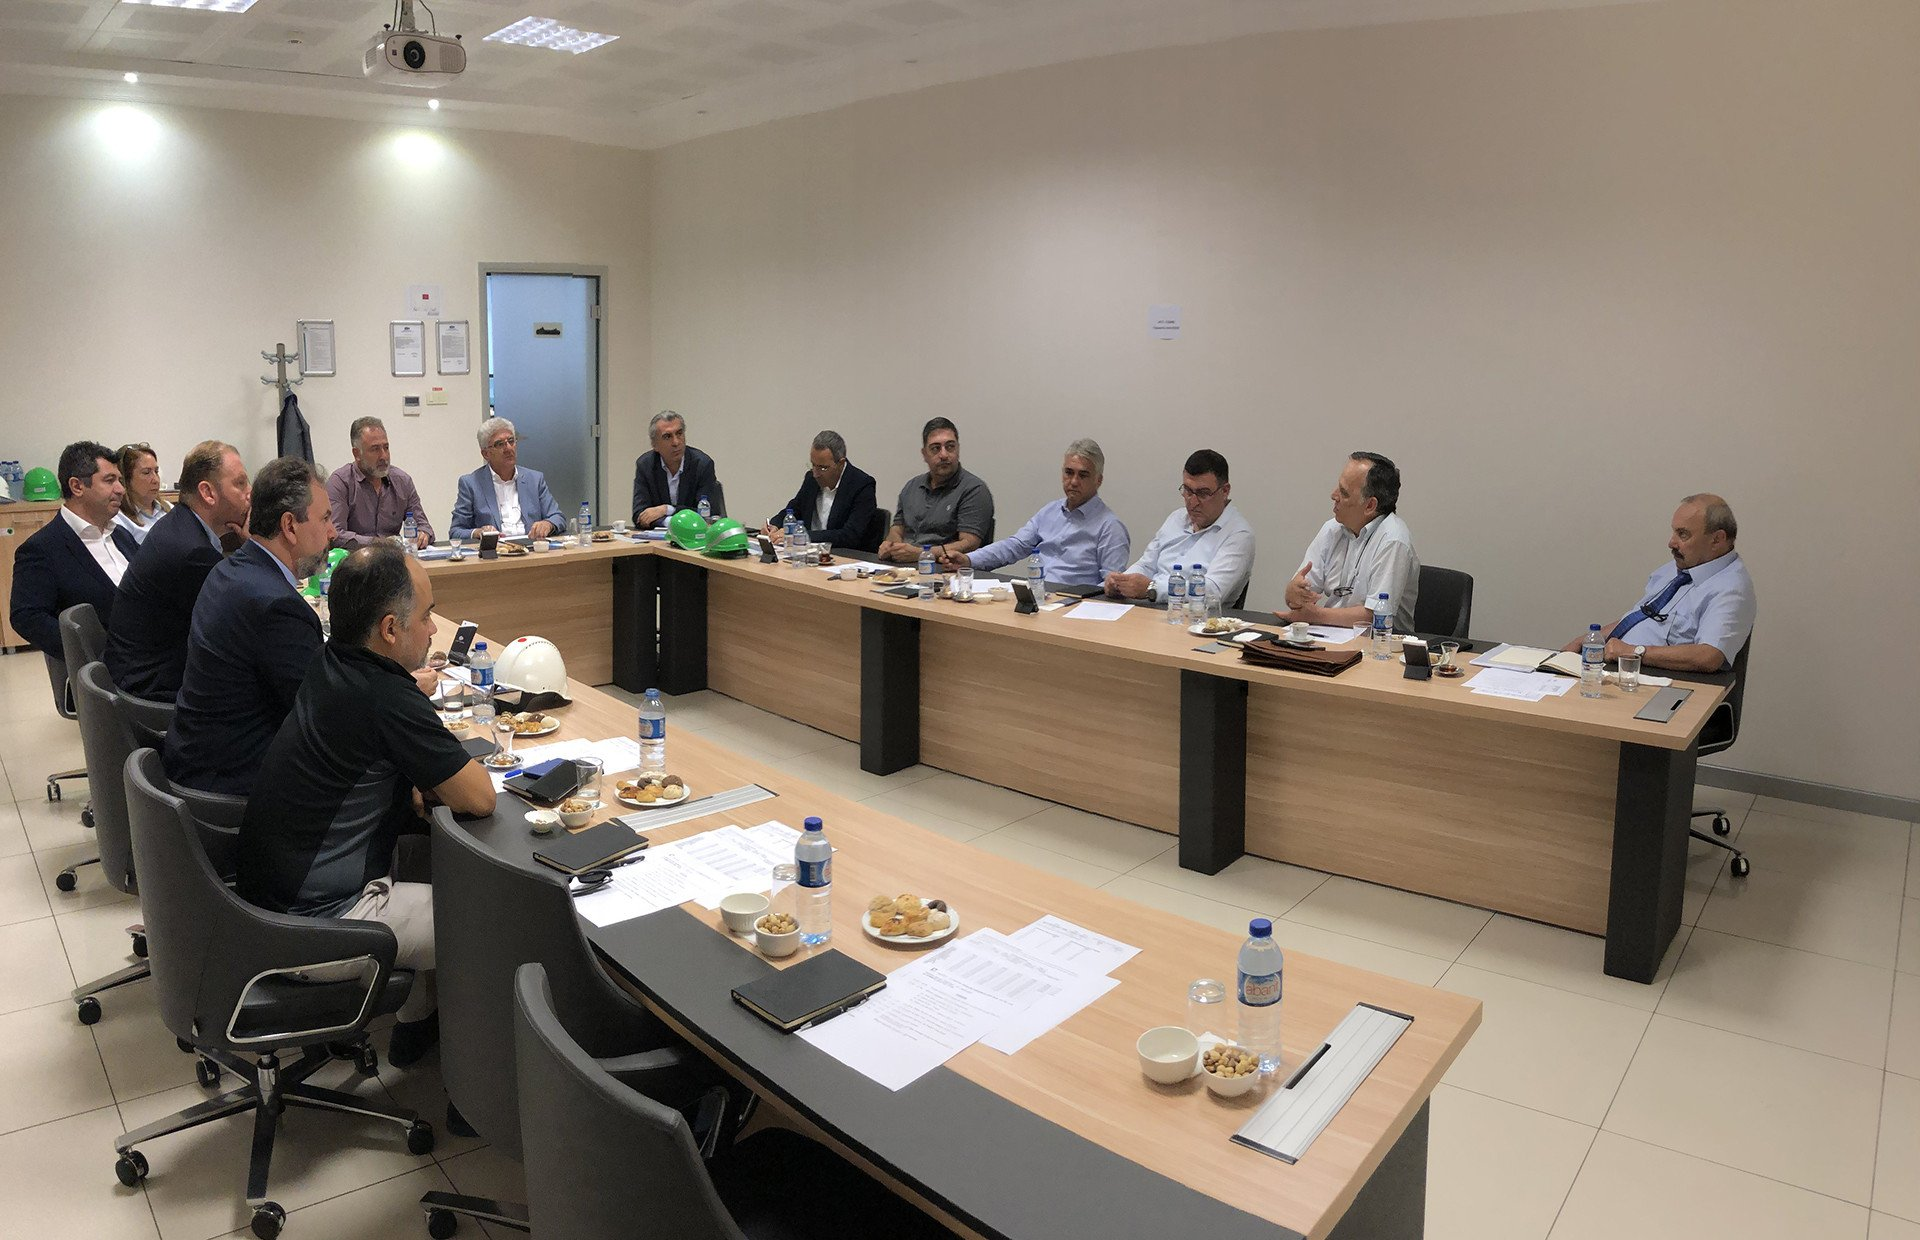 Executives of Milliyet are at Cemre!